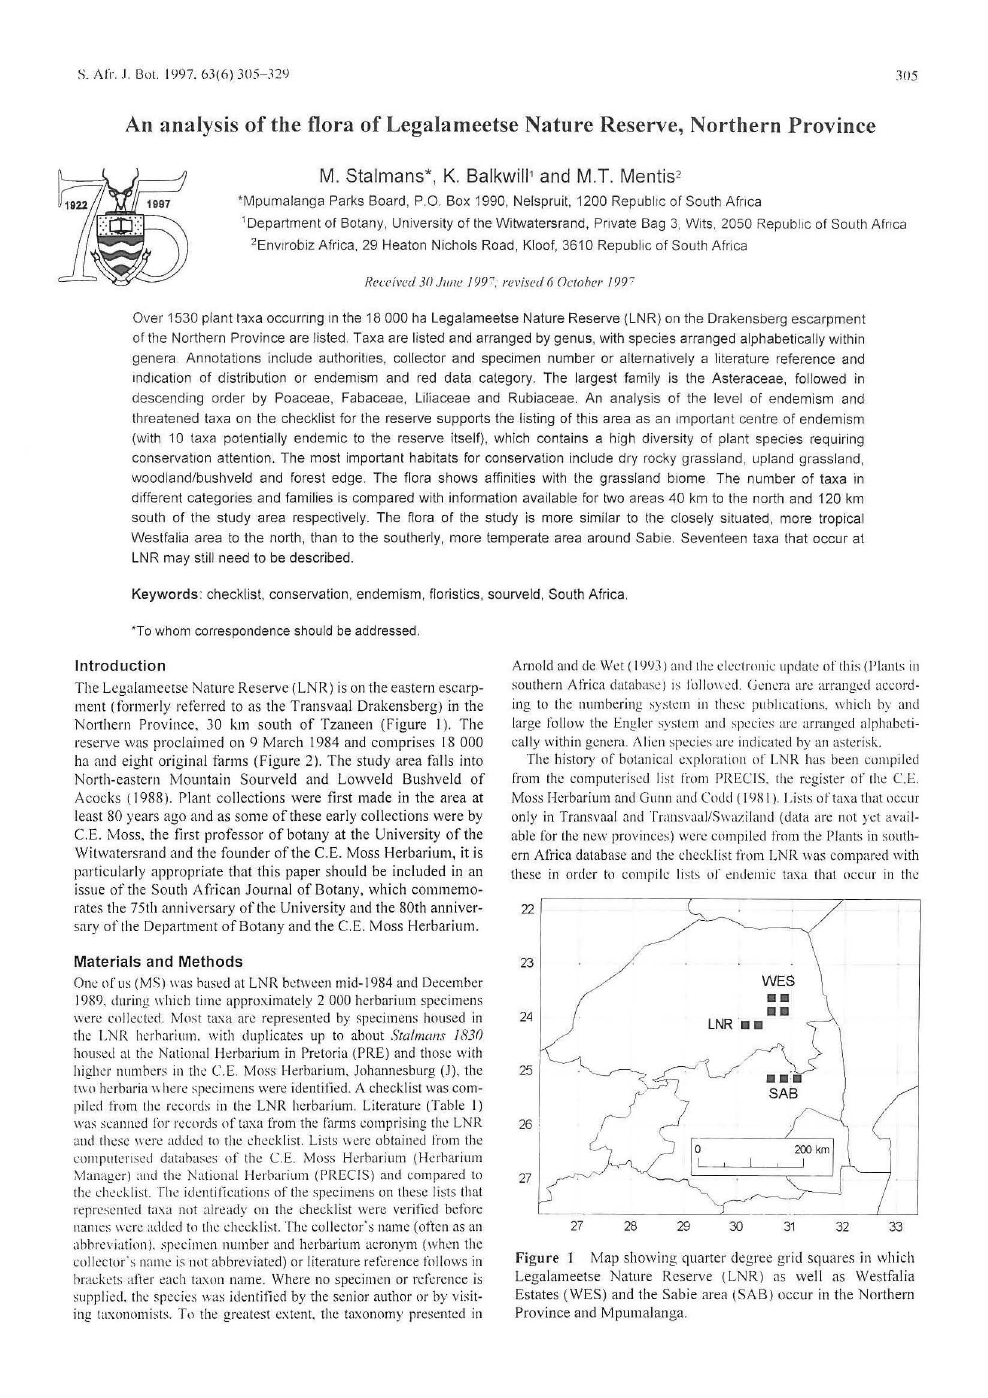 An analysis of the flora of Legalameetse Nature Reserve, Northern